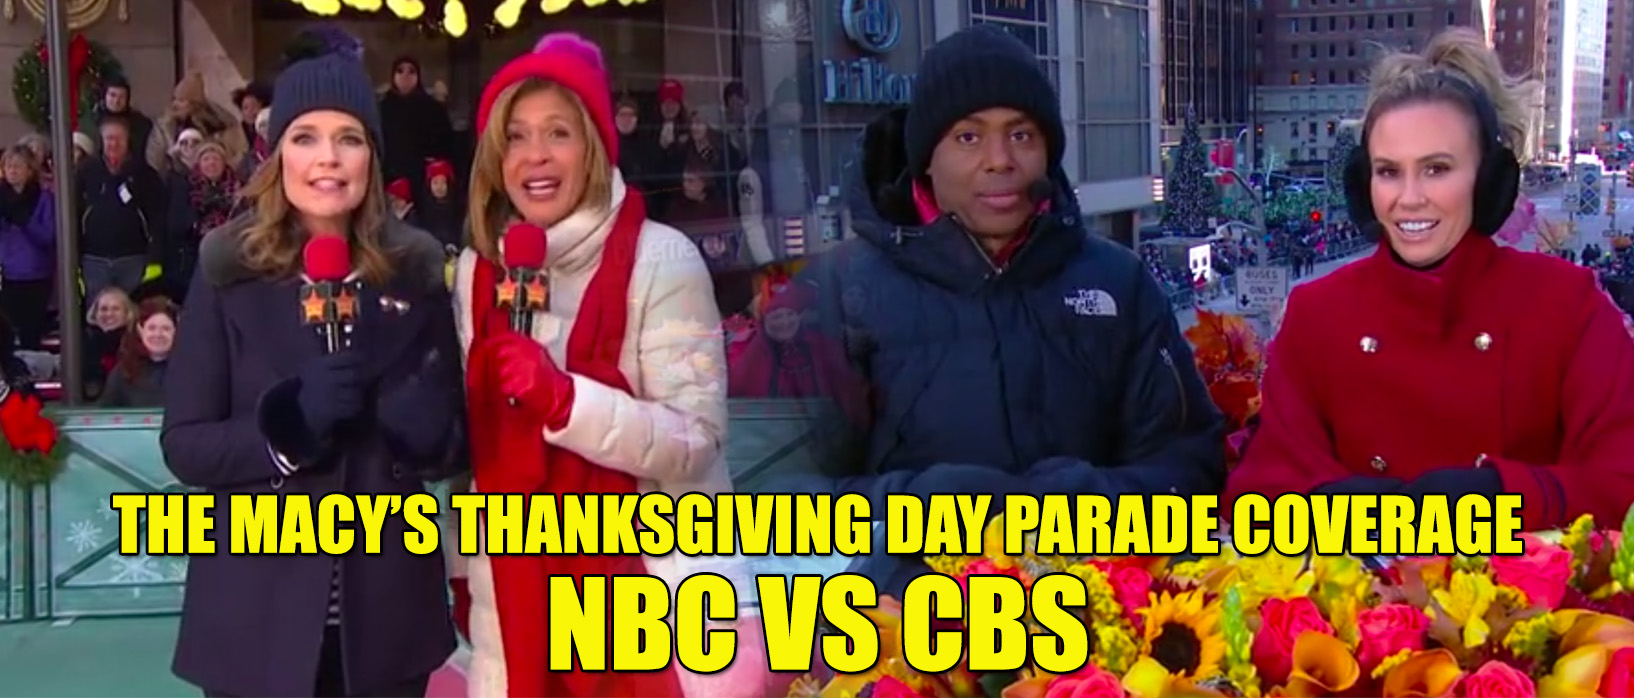 Macys Thanksgiving Day Parade Coverage NBC CBS tv review